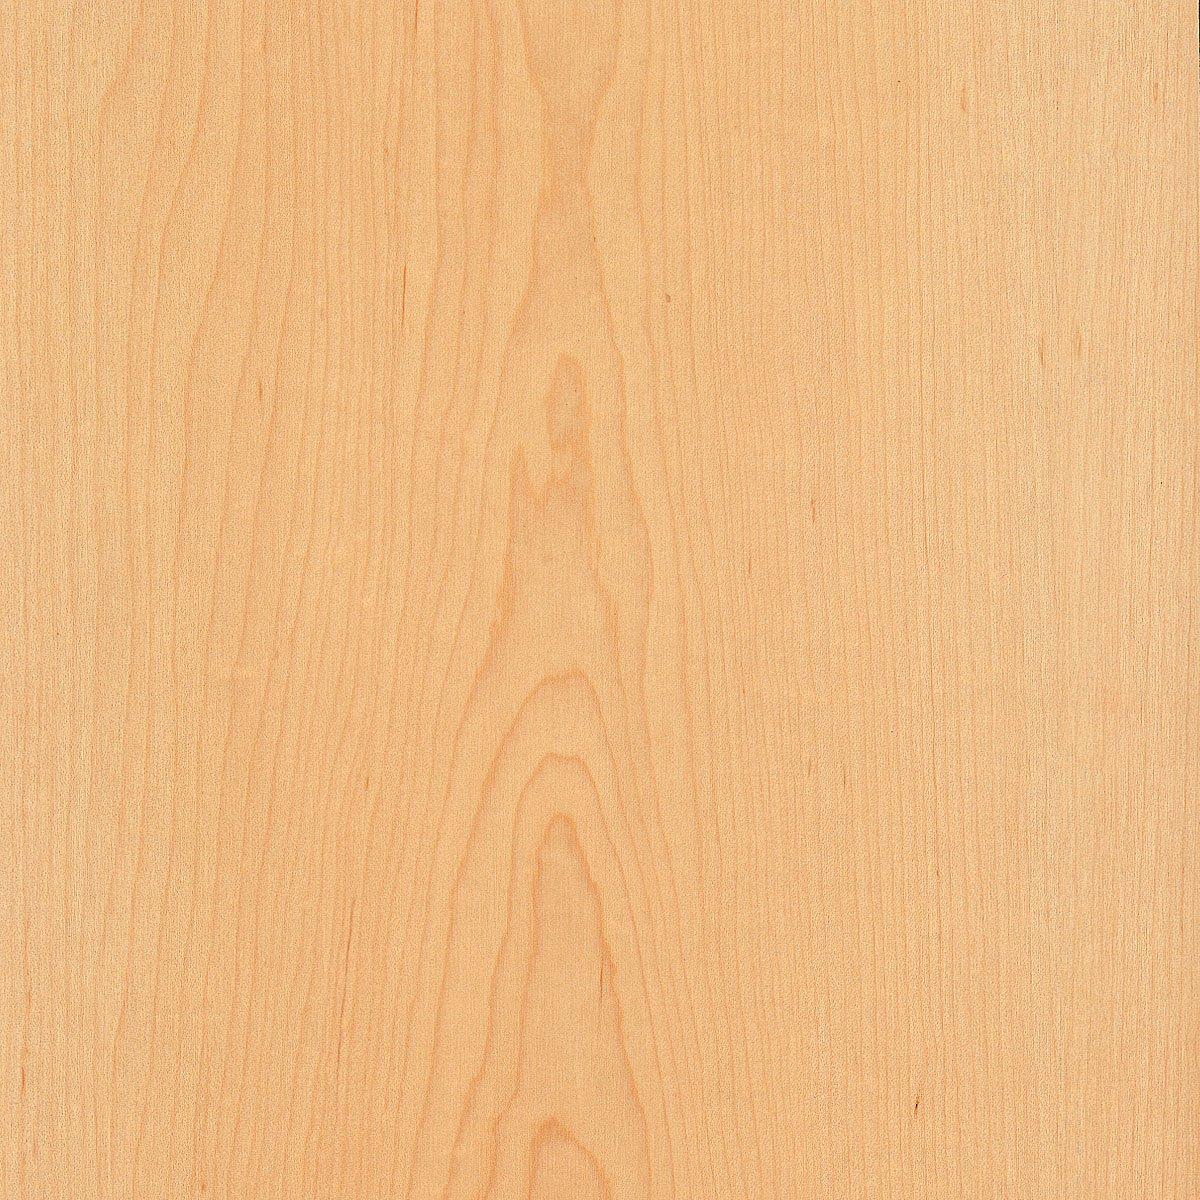 Maple, White, Flat Cut, 24x96 10 mil (Paperback) Wood Veneer Sheet by Wood-All